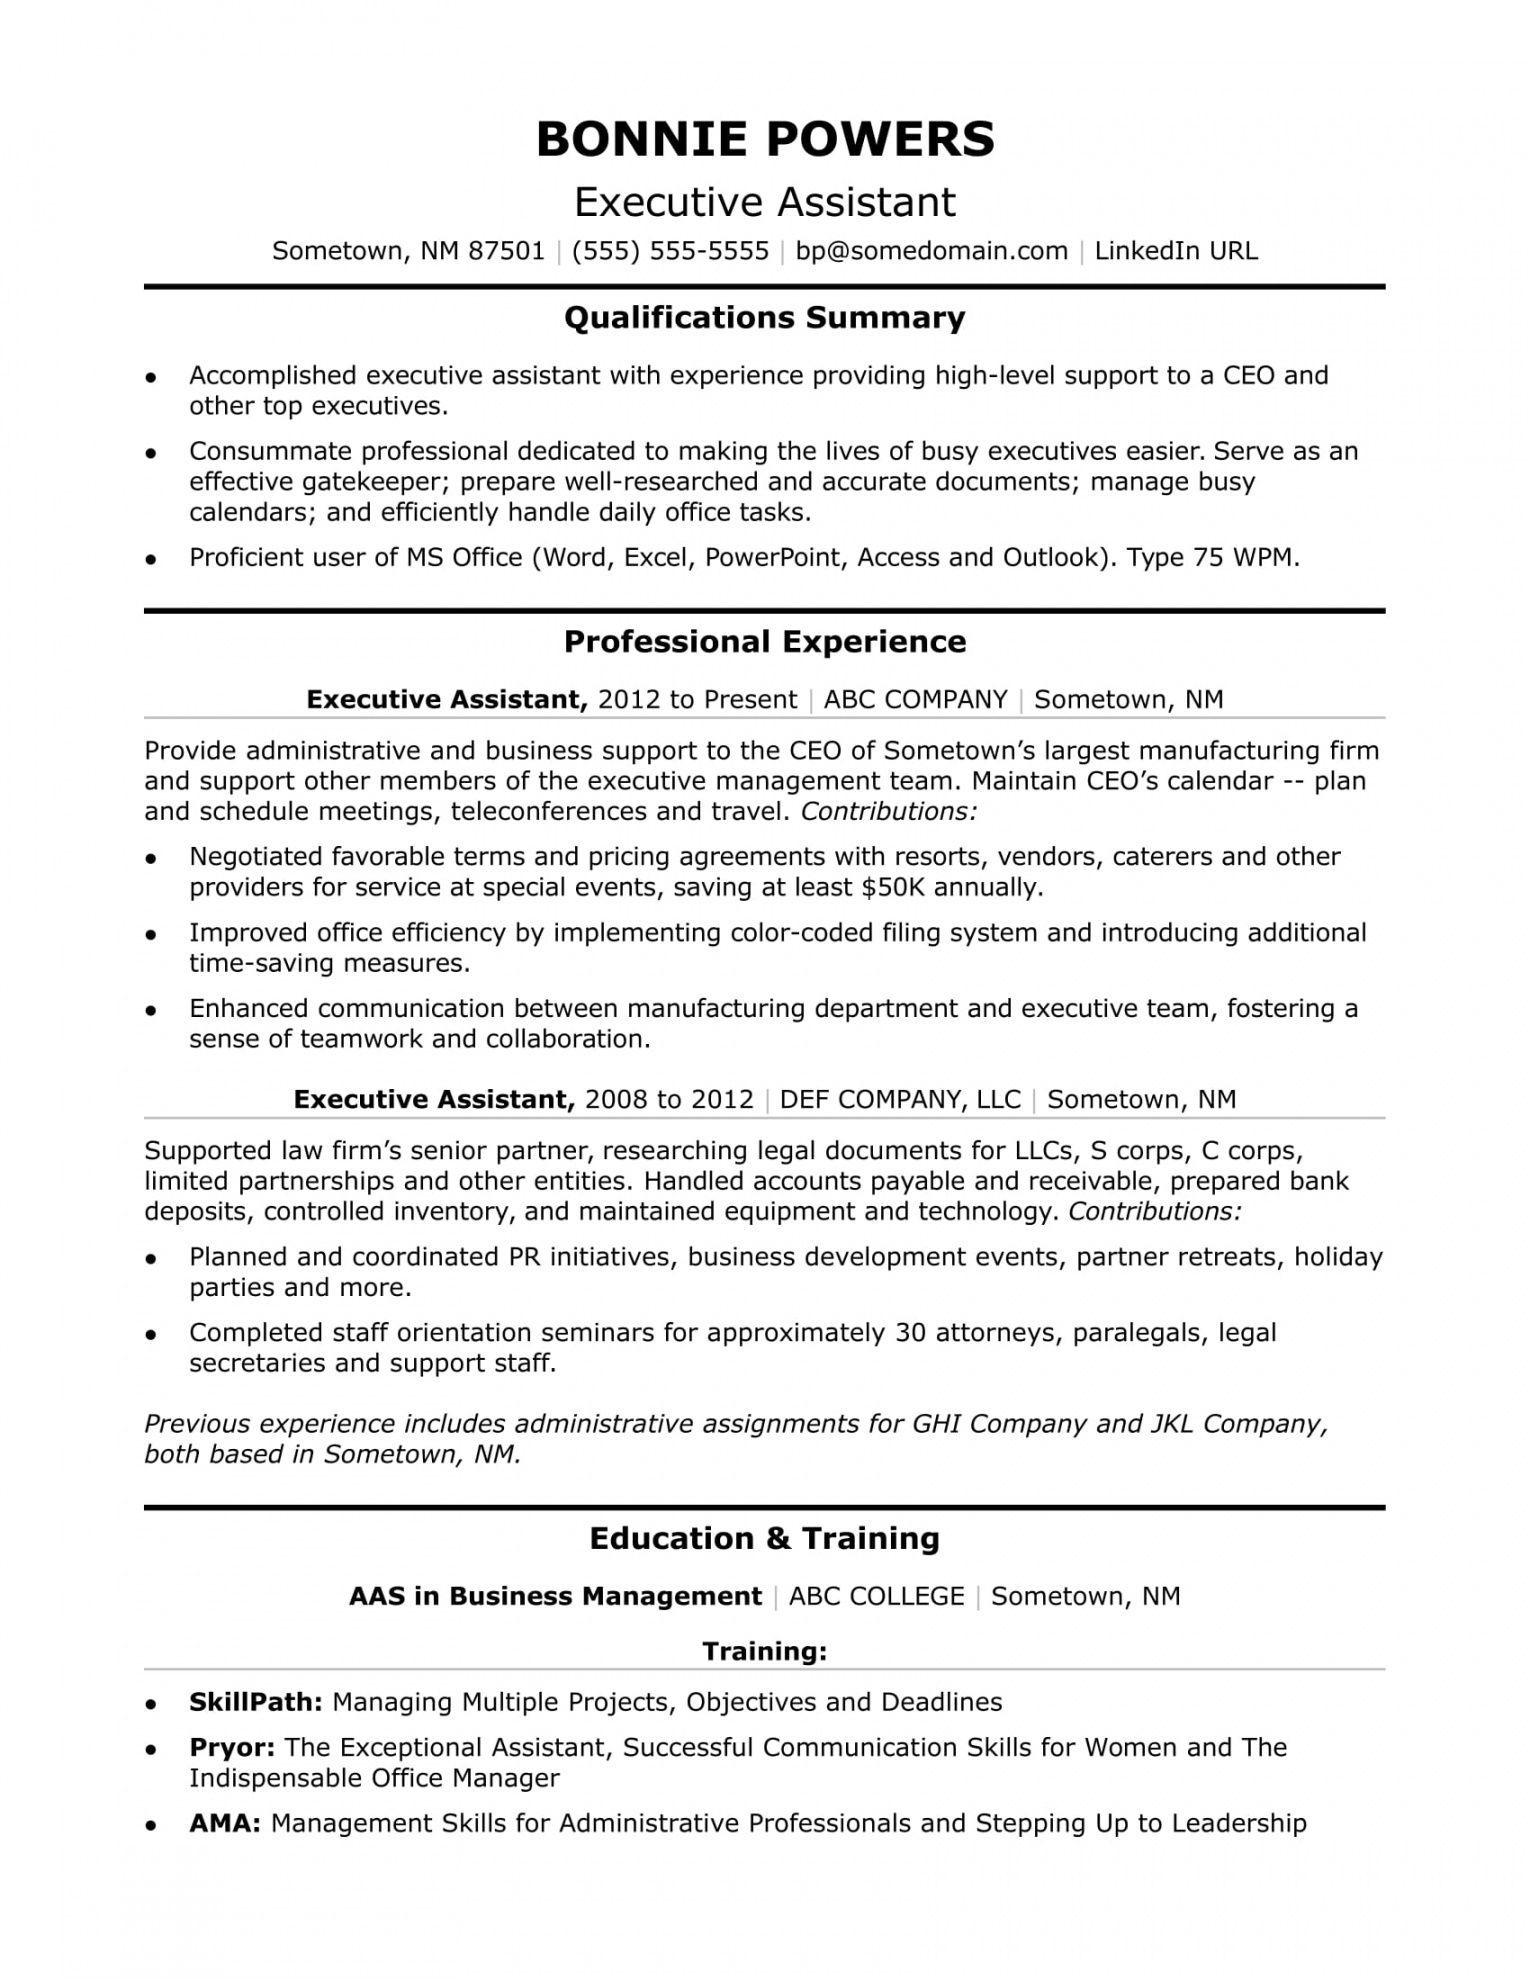 Browse Our Example Of Executive Assistant Job Description Template Administrative Assistant Resume Resume Summary Examples Job Resume Examples Administrative assistant job description template